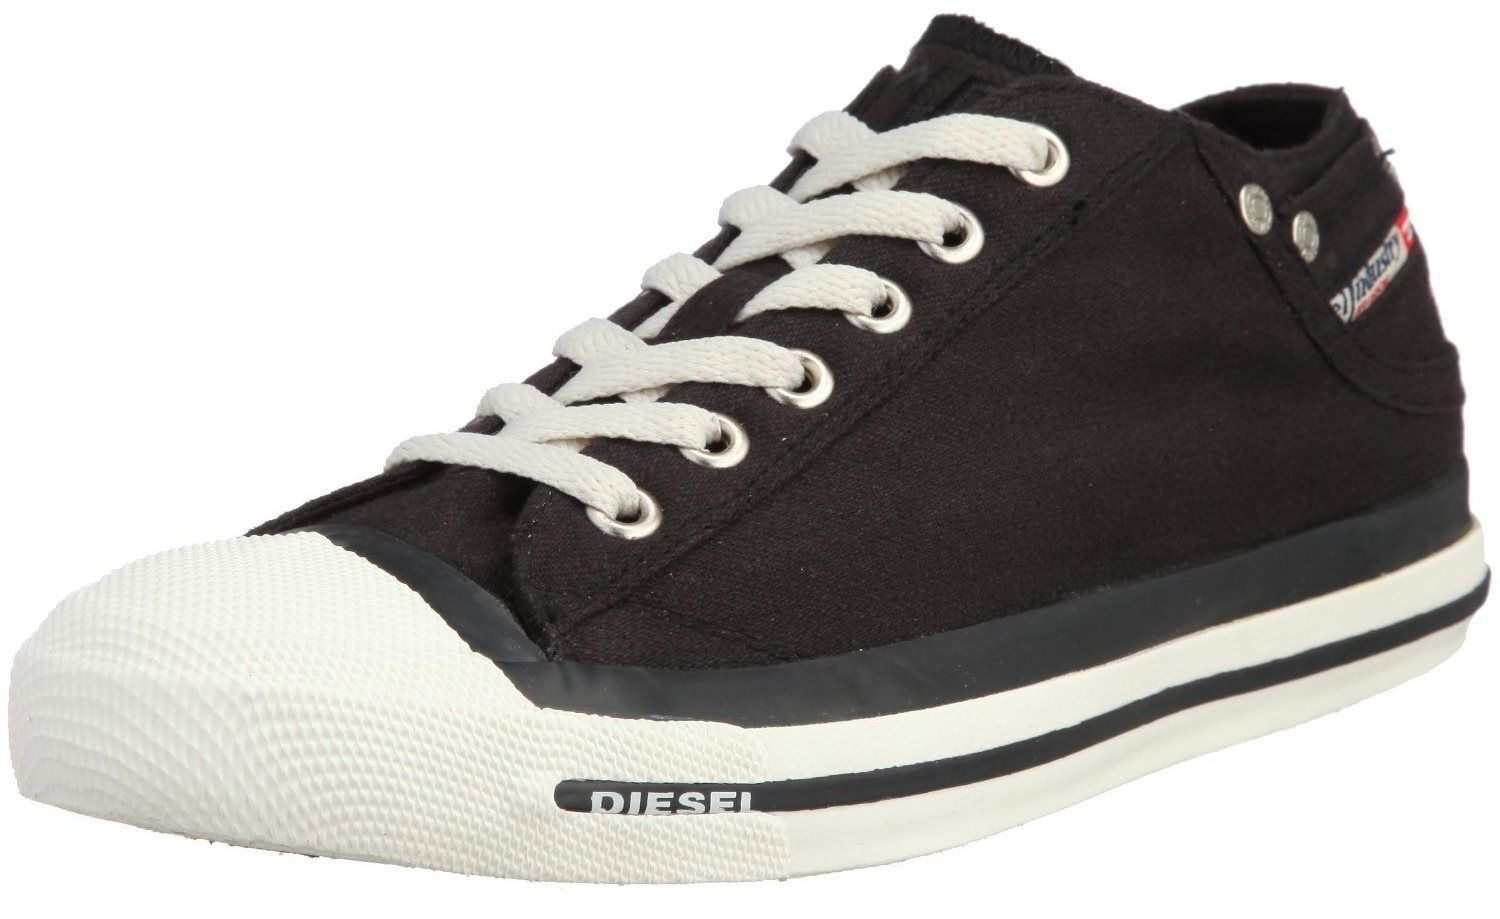 Diesel Exposure Low Low Exposure Black White Mens Canvas New Trainers Shoes Boots e9b392